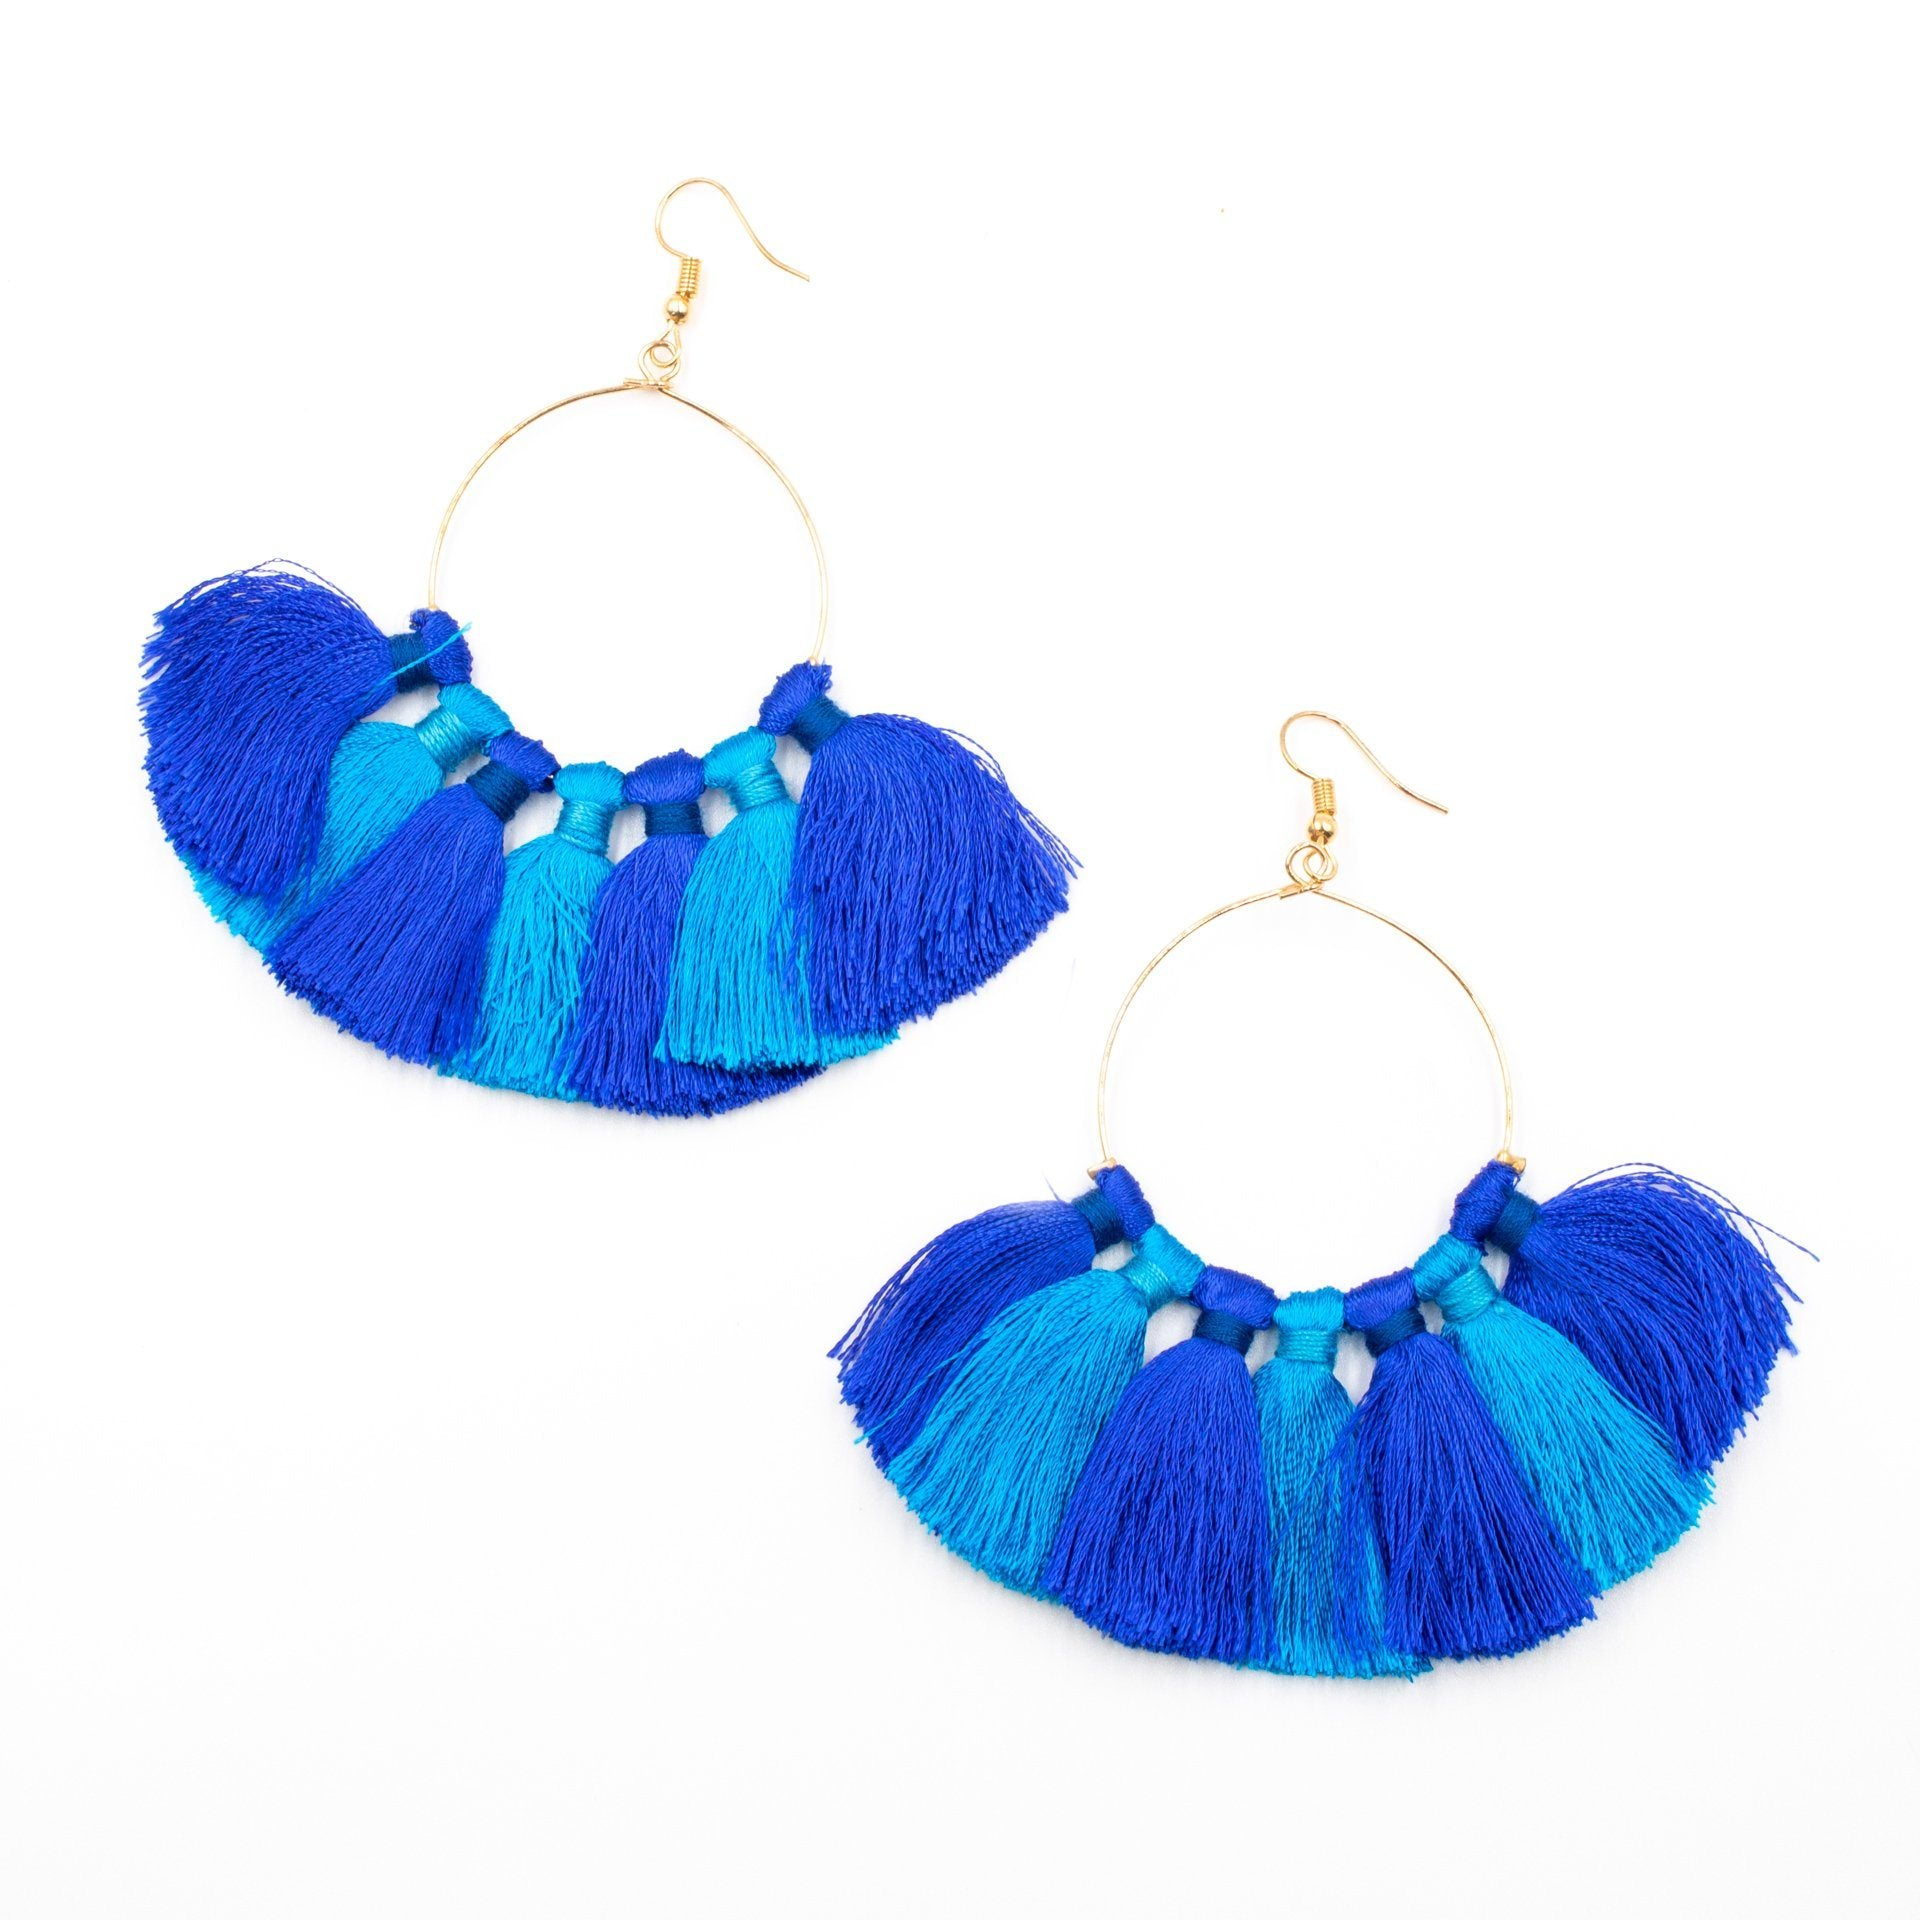 H20 Hoop Cotton Tassel Earrings - Arlo and Arrows